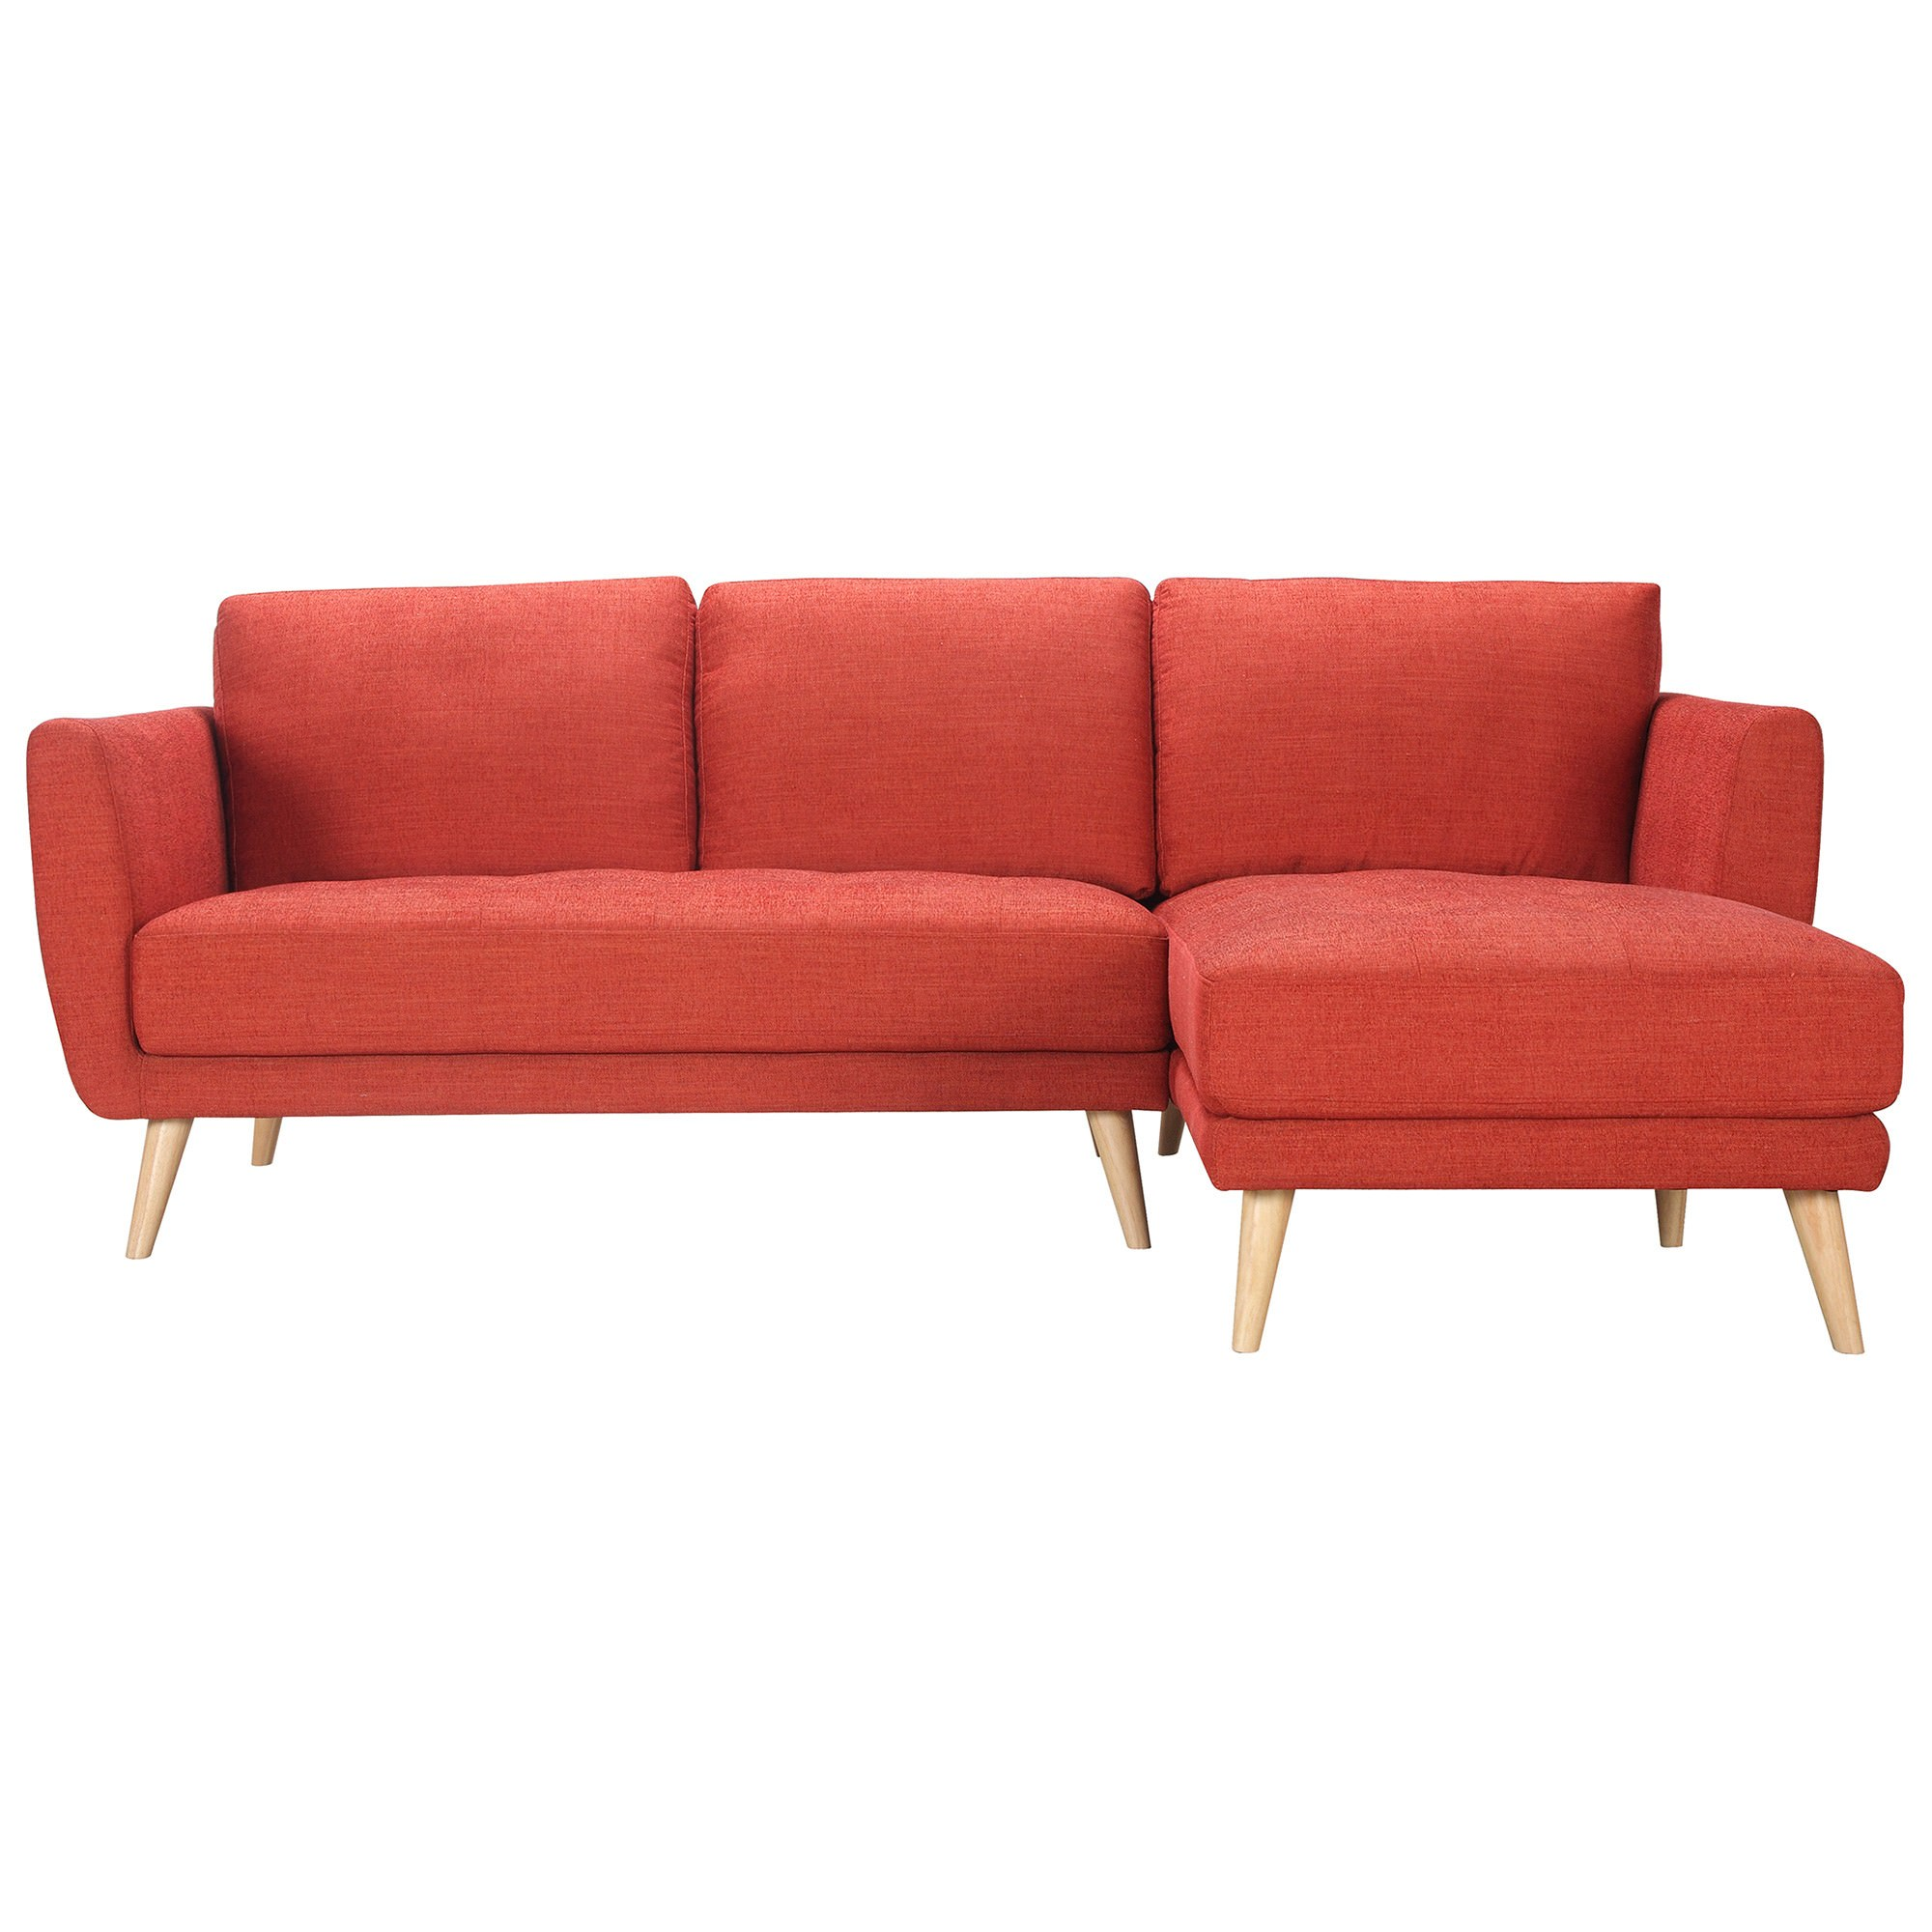 Artarmon Fabric Corner Sofa, 2 Seater with Right Hand Facing Chaise, Paprika